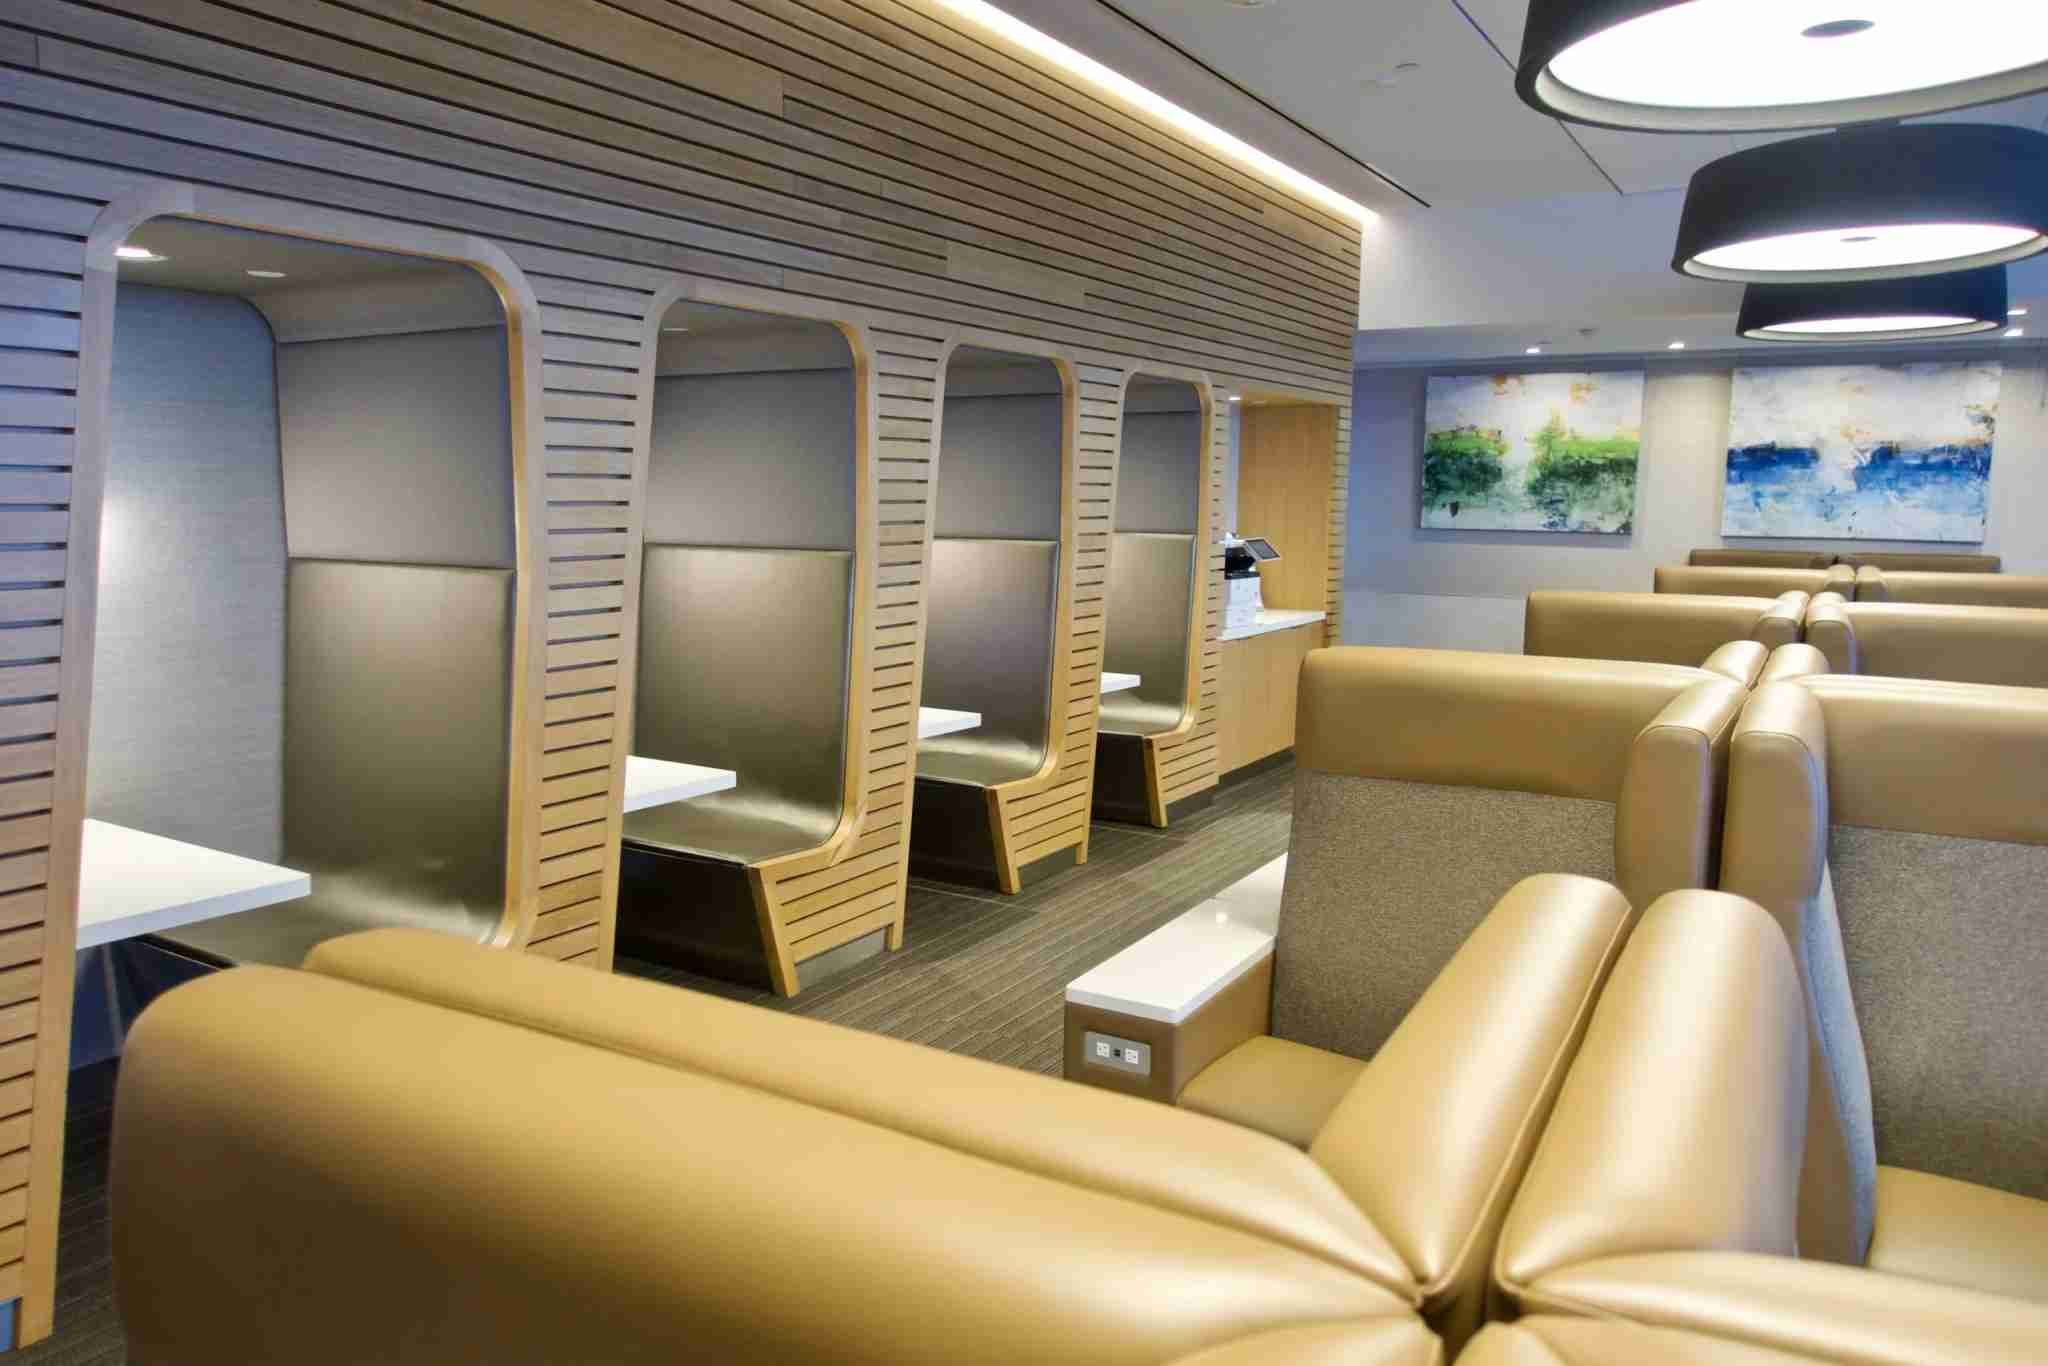 AA Flagship Lounge, Terminal 8 JFK. Photo by Christian Kramer / The Points Guy